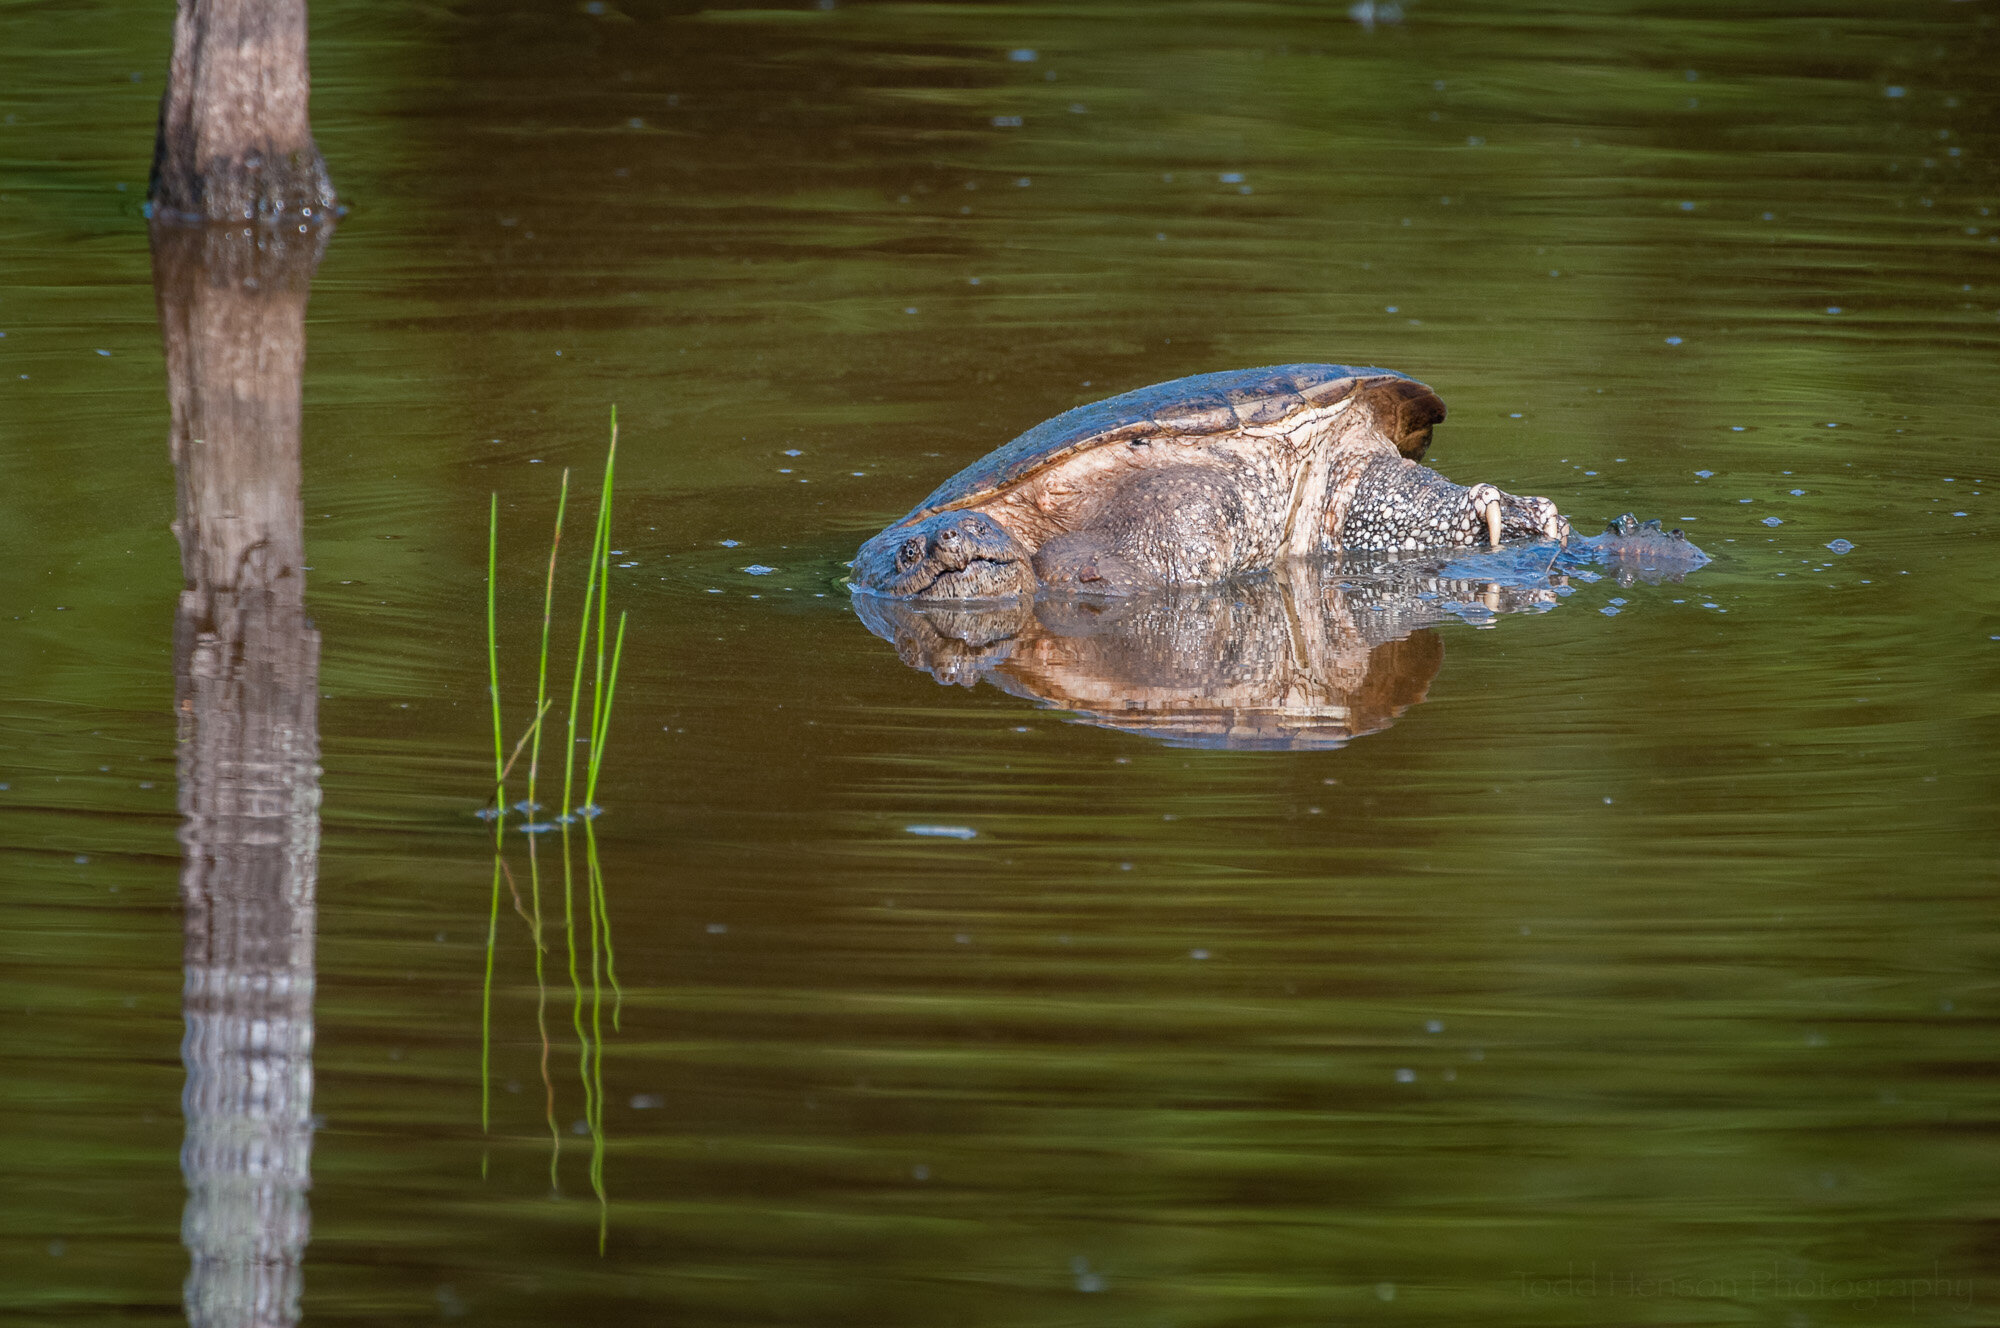 The reflections help create some interesting compositions, here with the male Snapping Turtle angled in the water above the female.